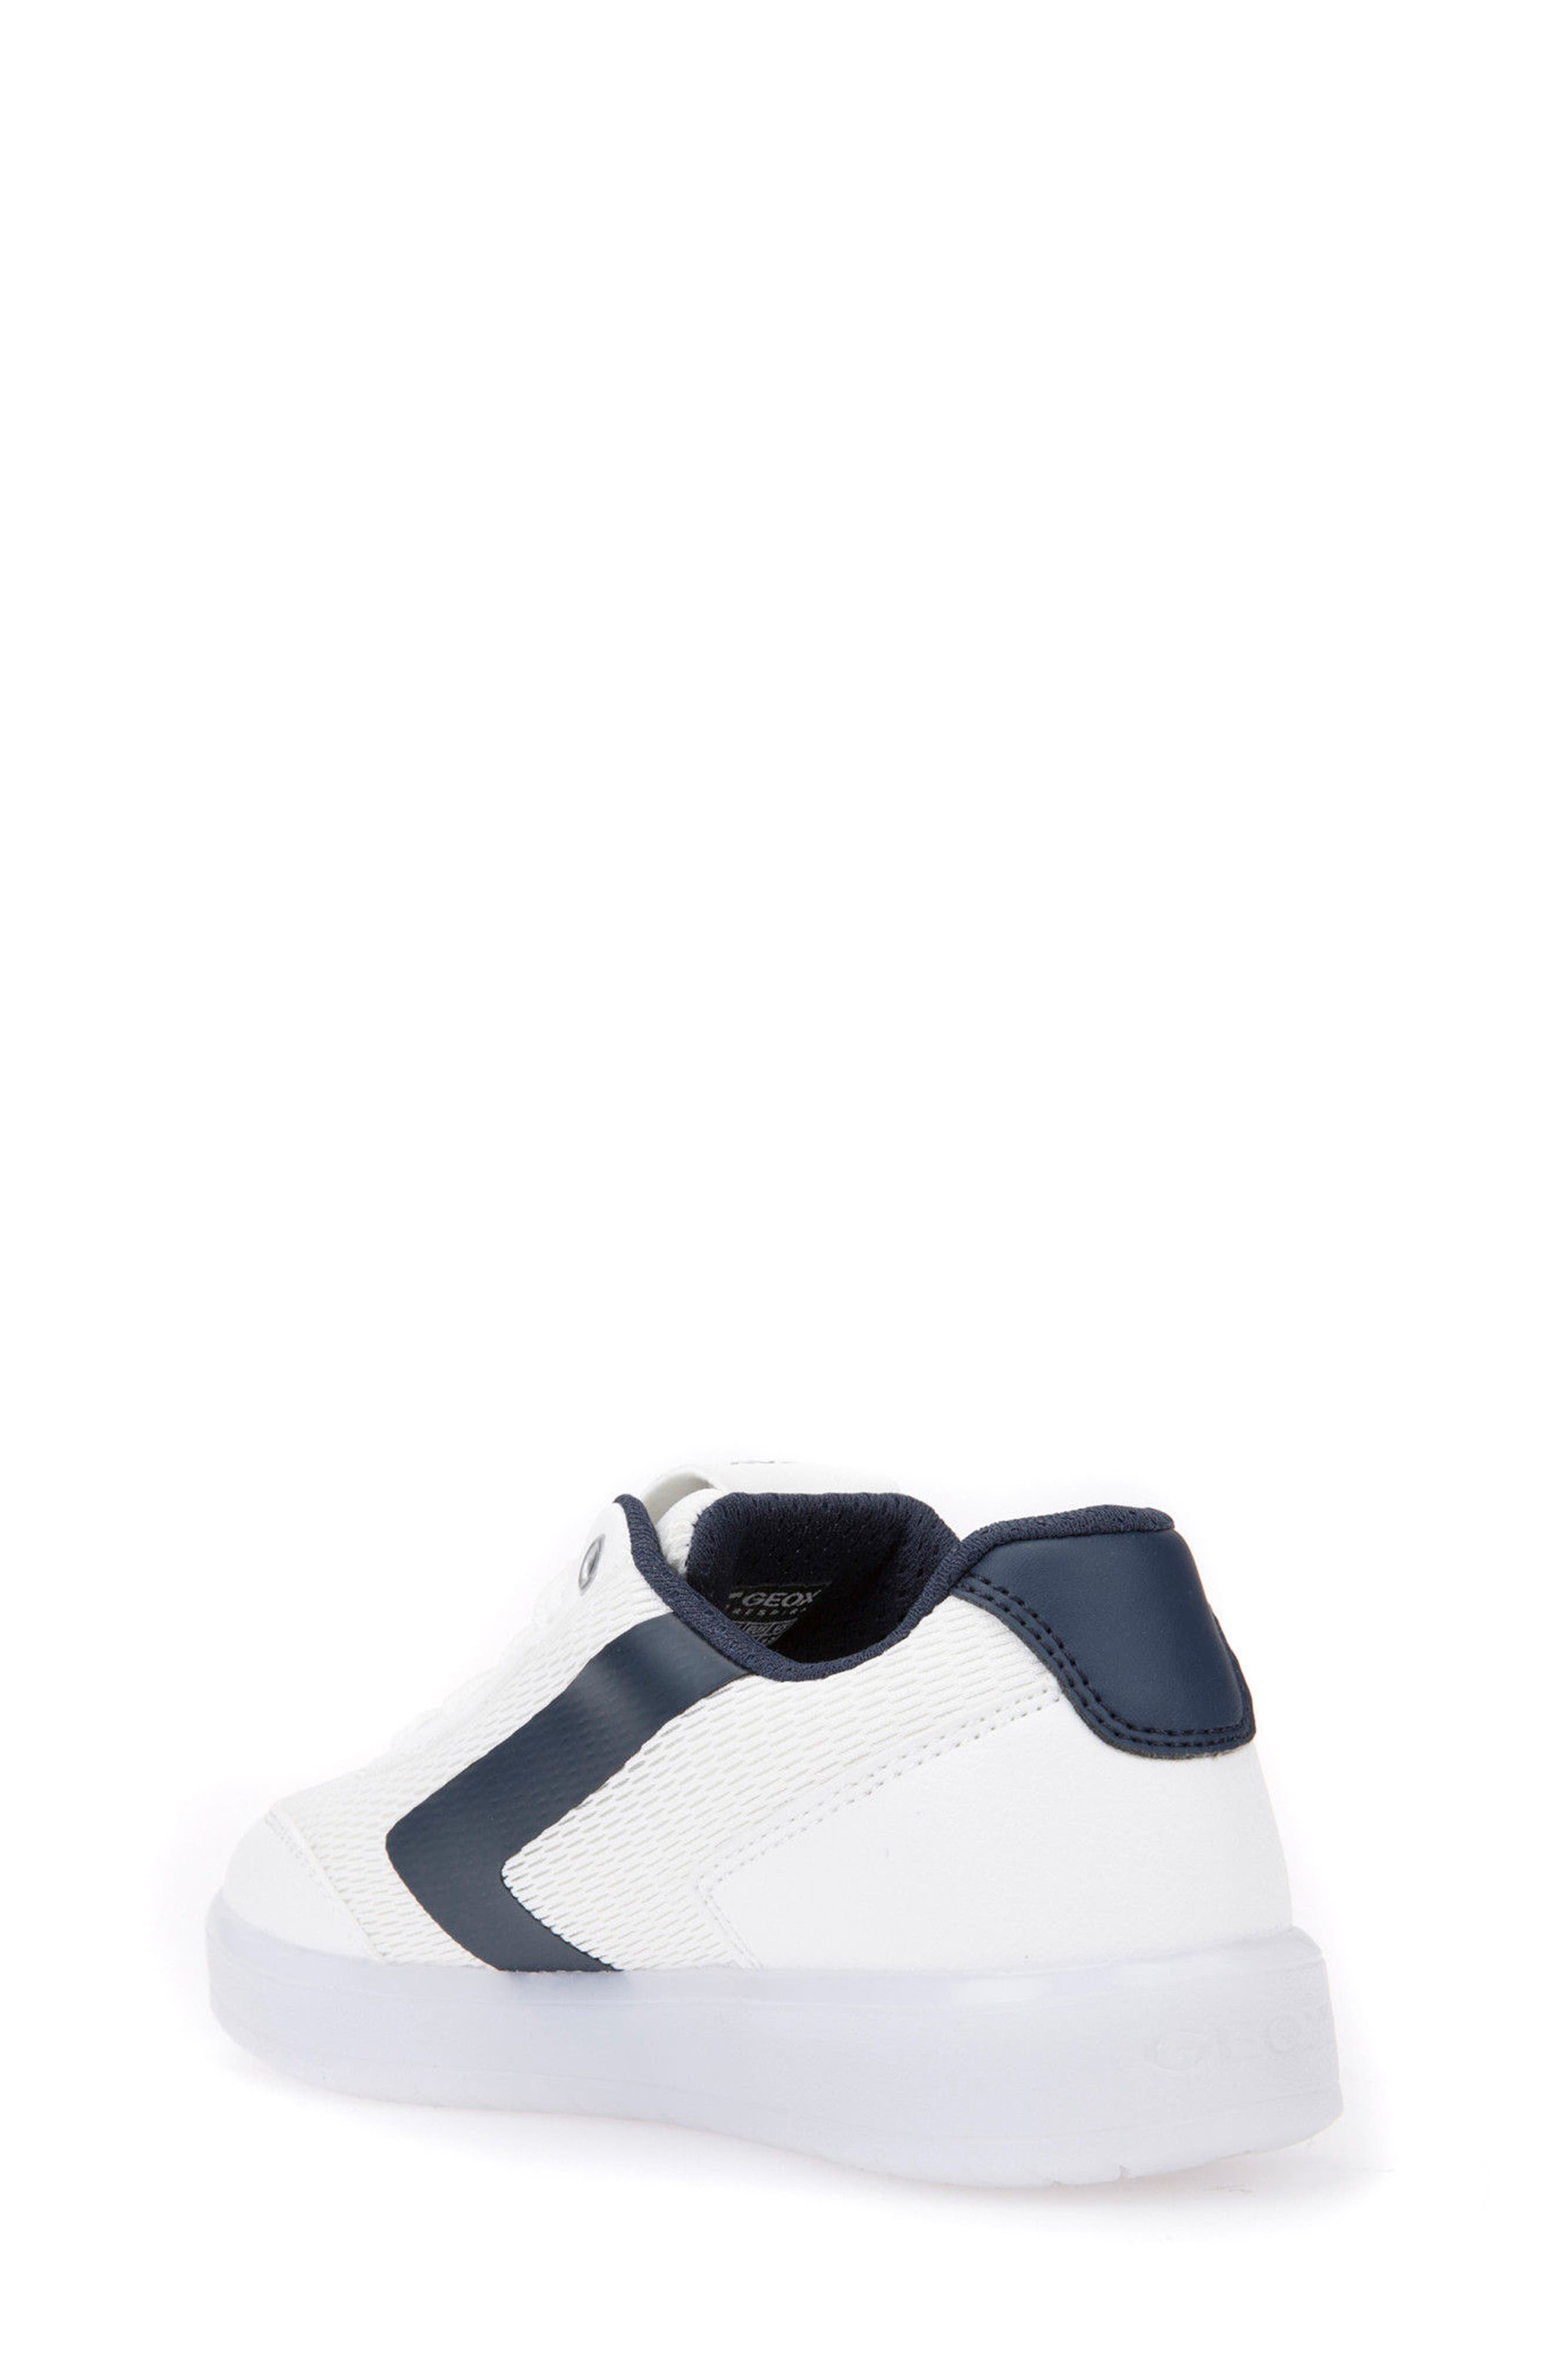 Kommodor Light-Up Low Top Sneaker,                             Alternate thumbnail 2, color,                             White/ Navy